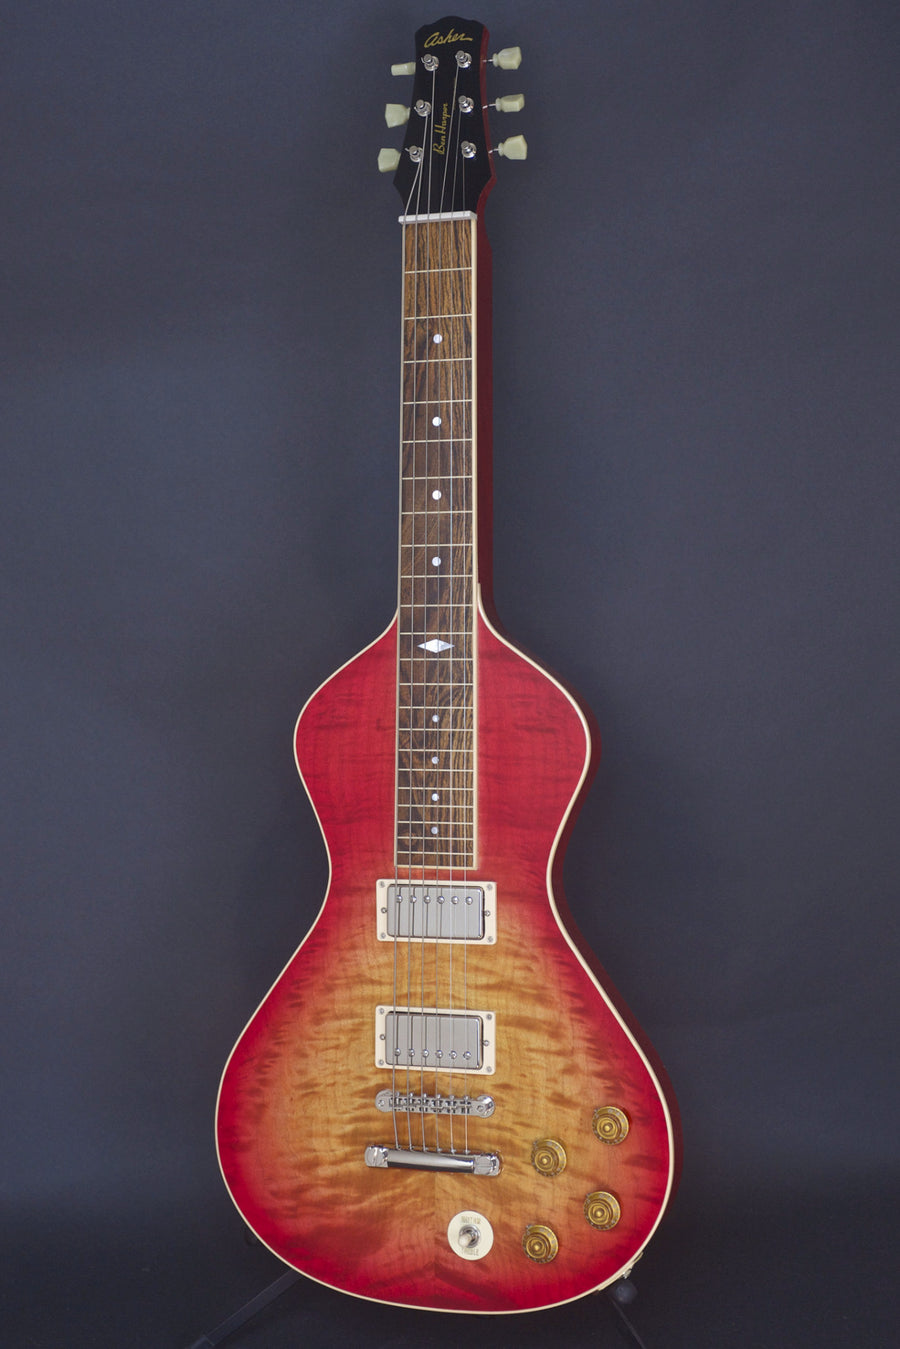 SOLD Asher 2016 #945 Ben Harper Signature Model Cherry Burst